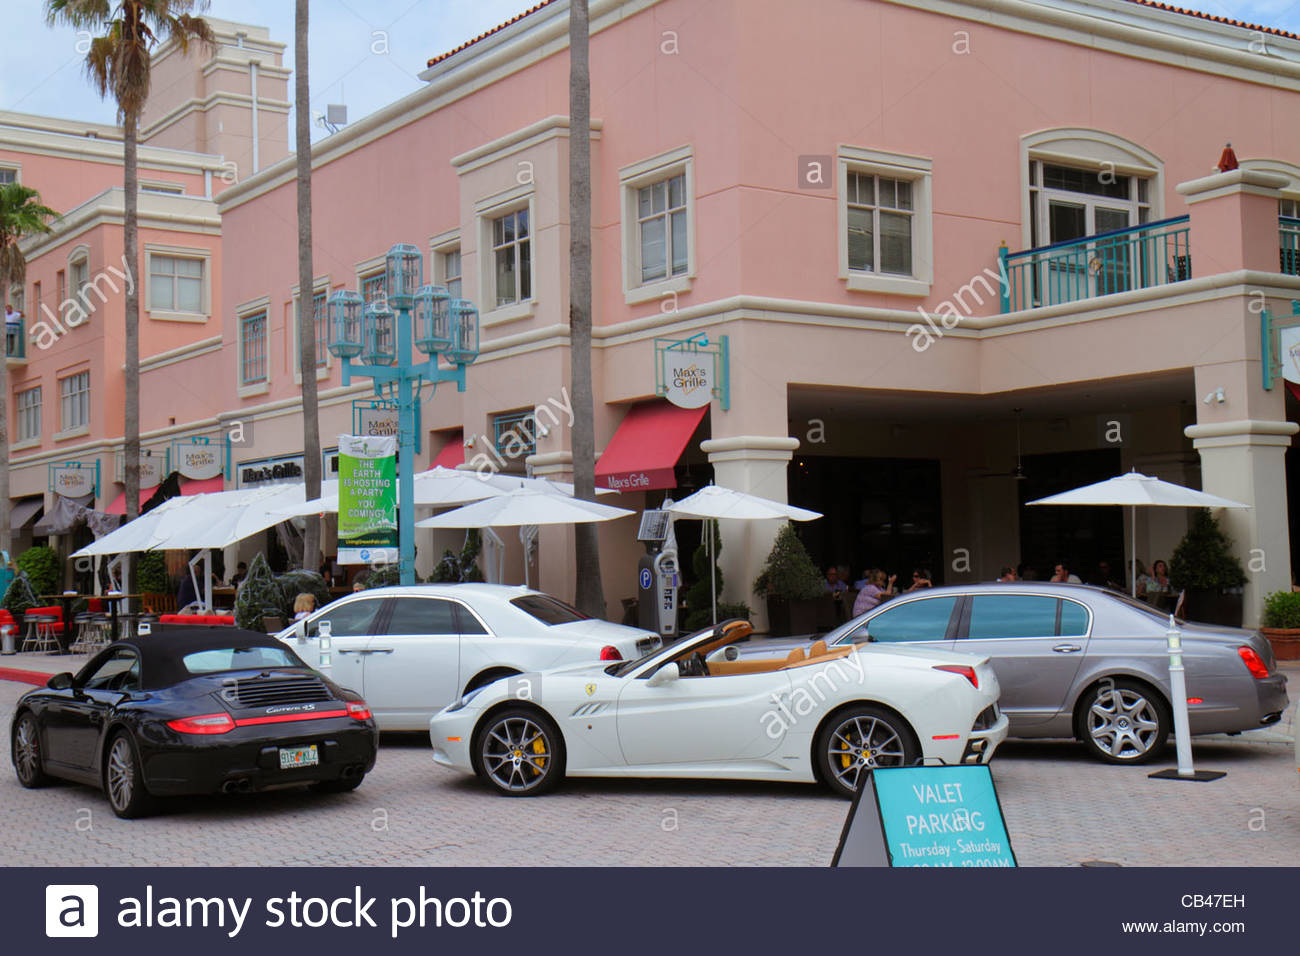 Valet Parking Person Stock Photos & Valet Parking Person Stock ...